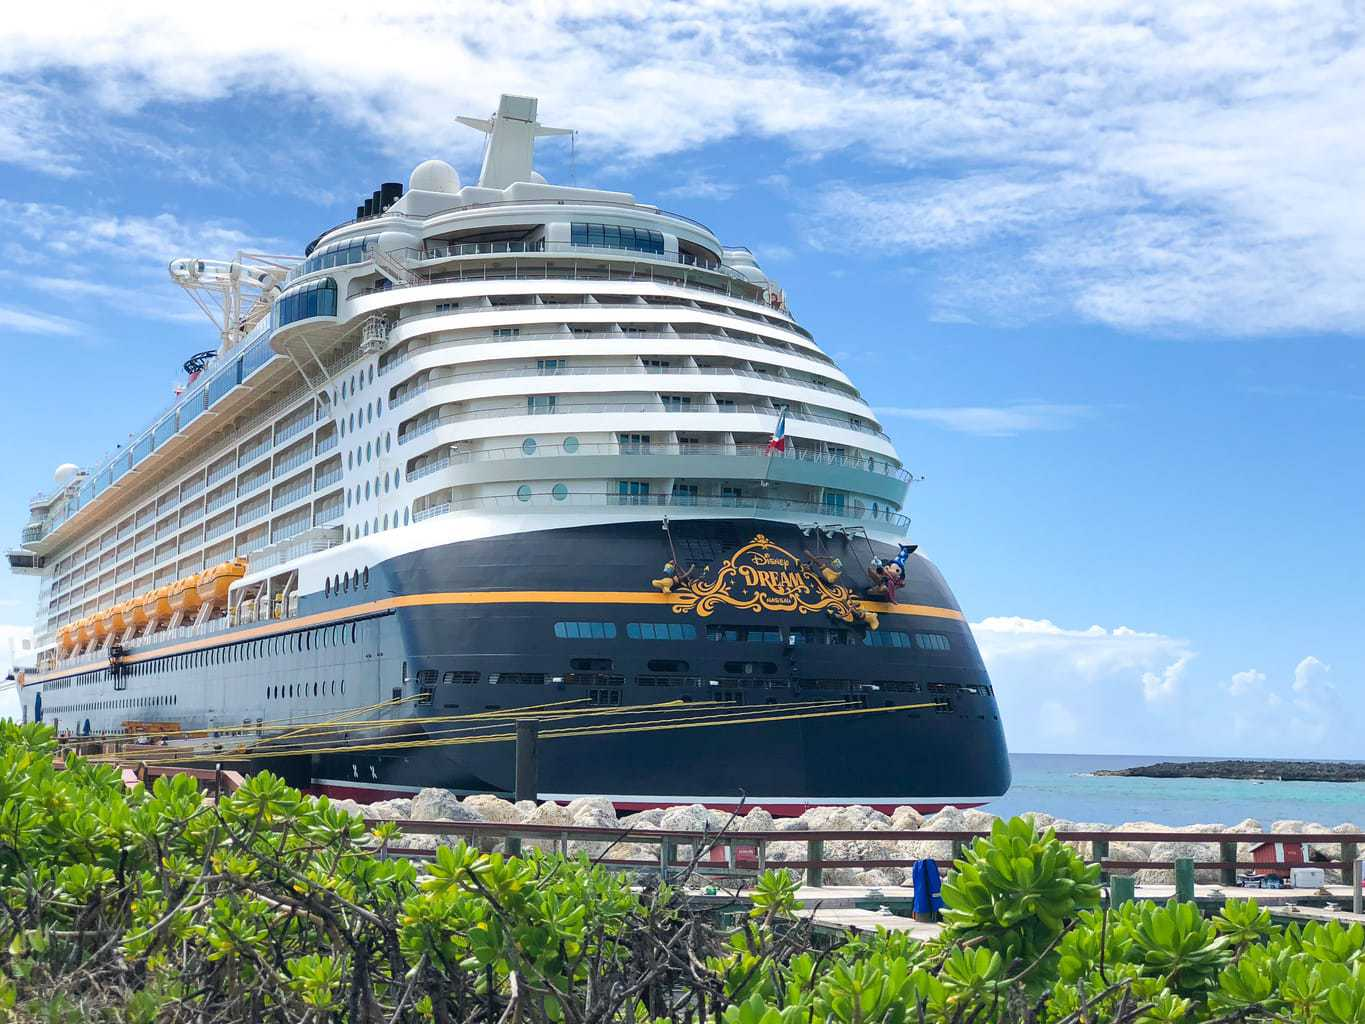 10 Reasons Why You'll Love the Disney Dream - Disney Cruise Review